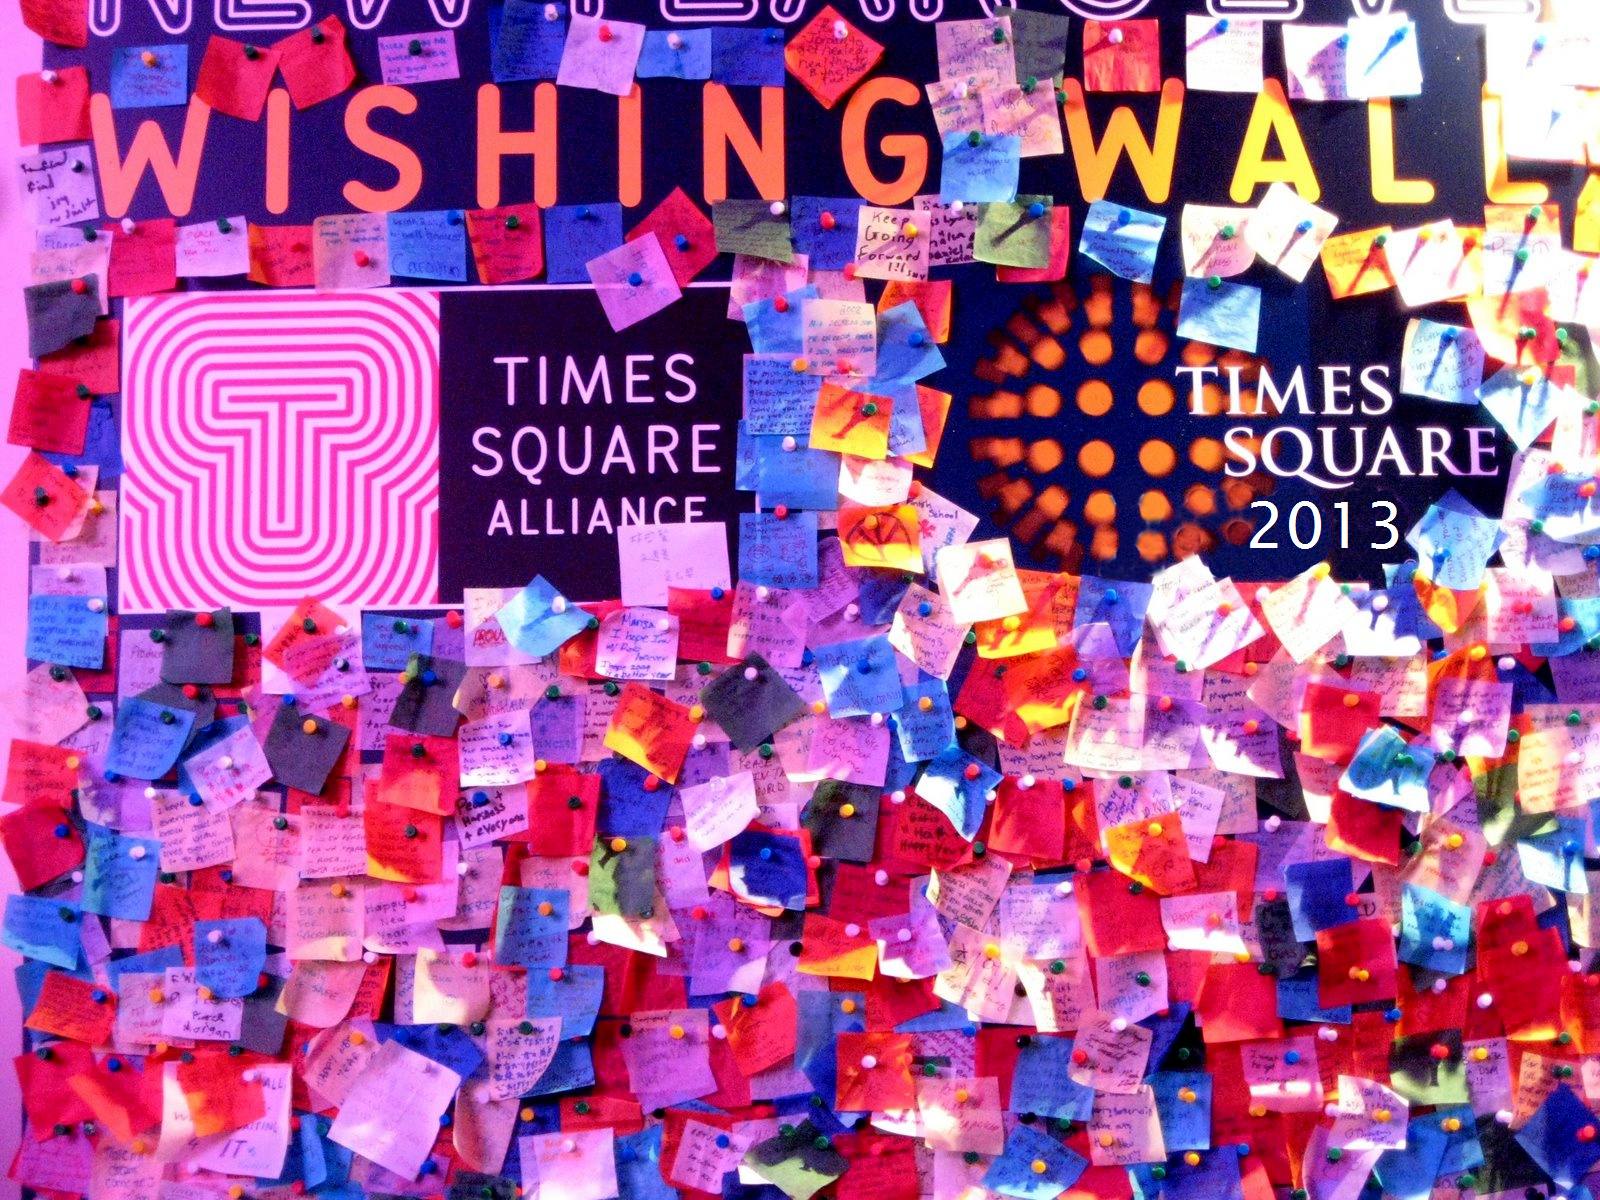 Wishing Wall New Year Times Square Confetti